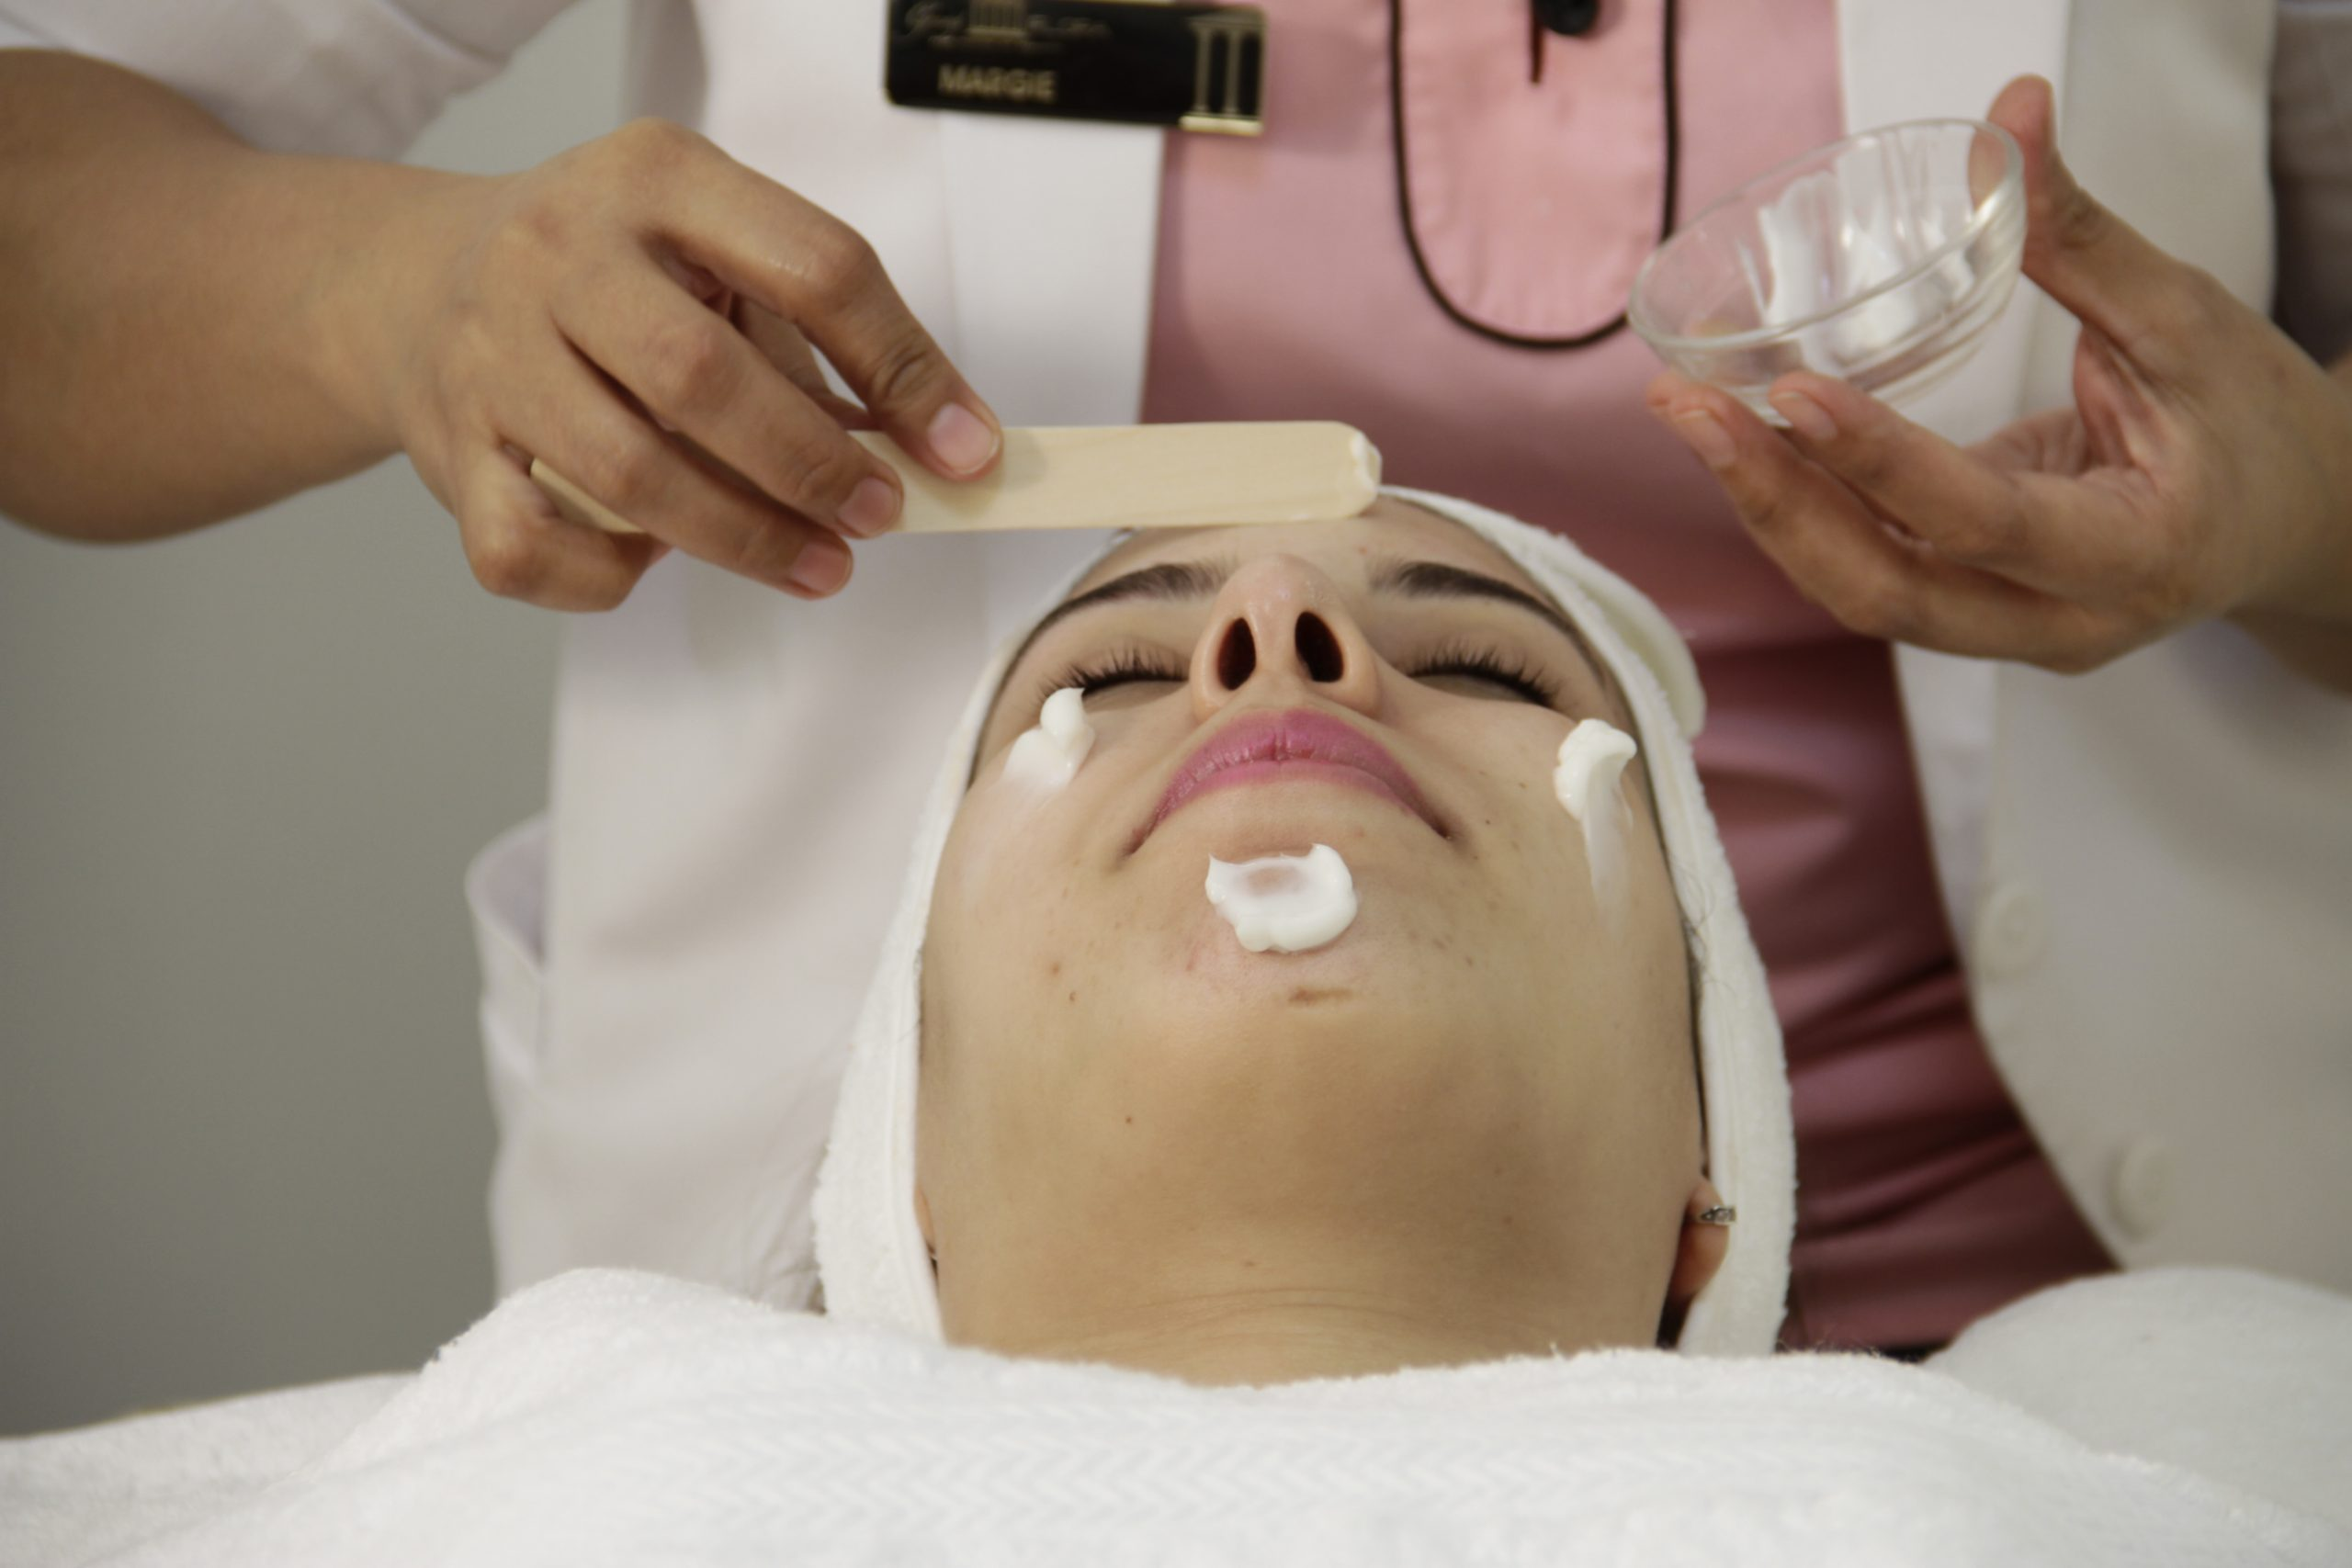 Beautician applying face mask on women